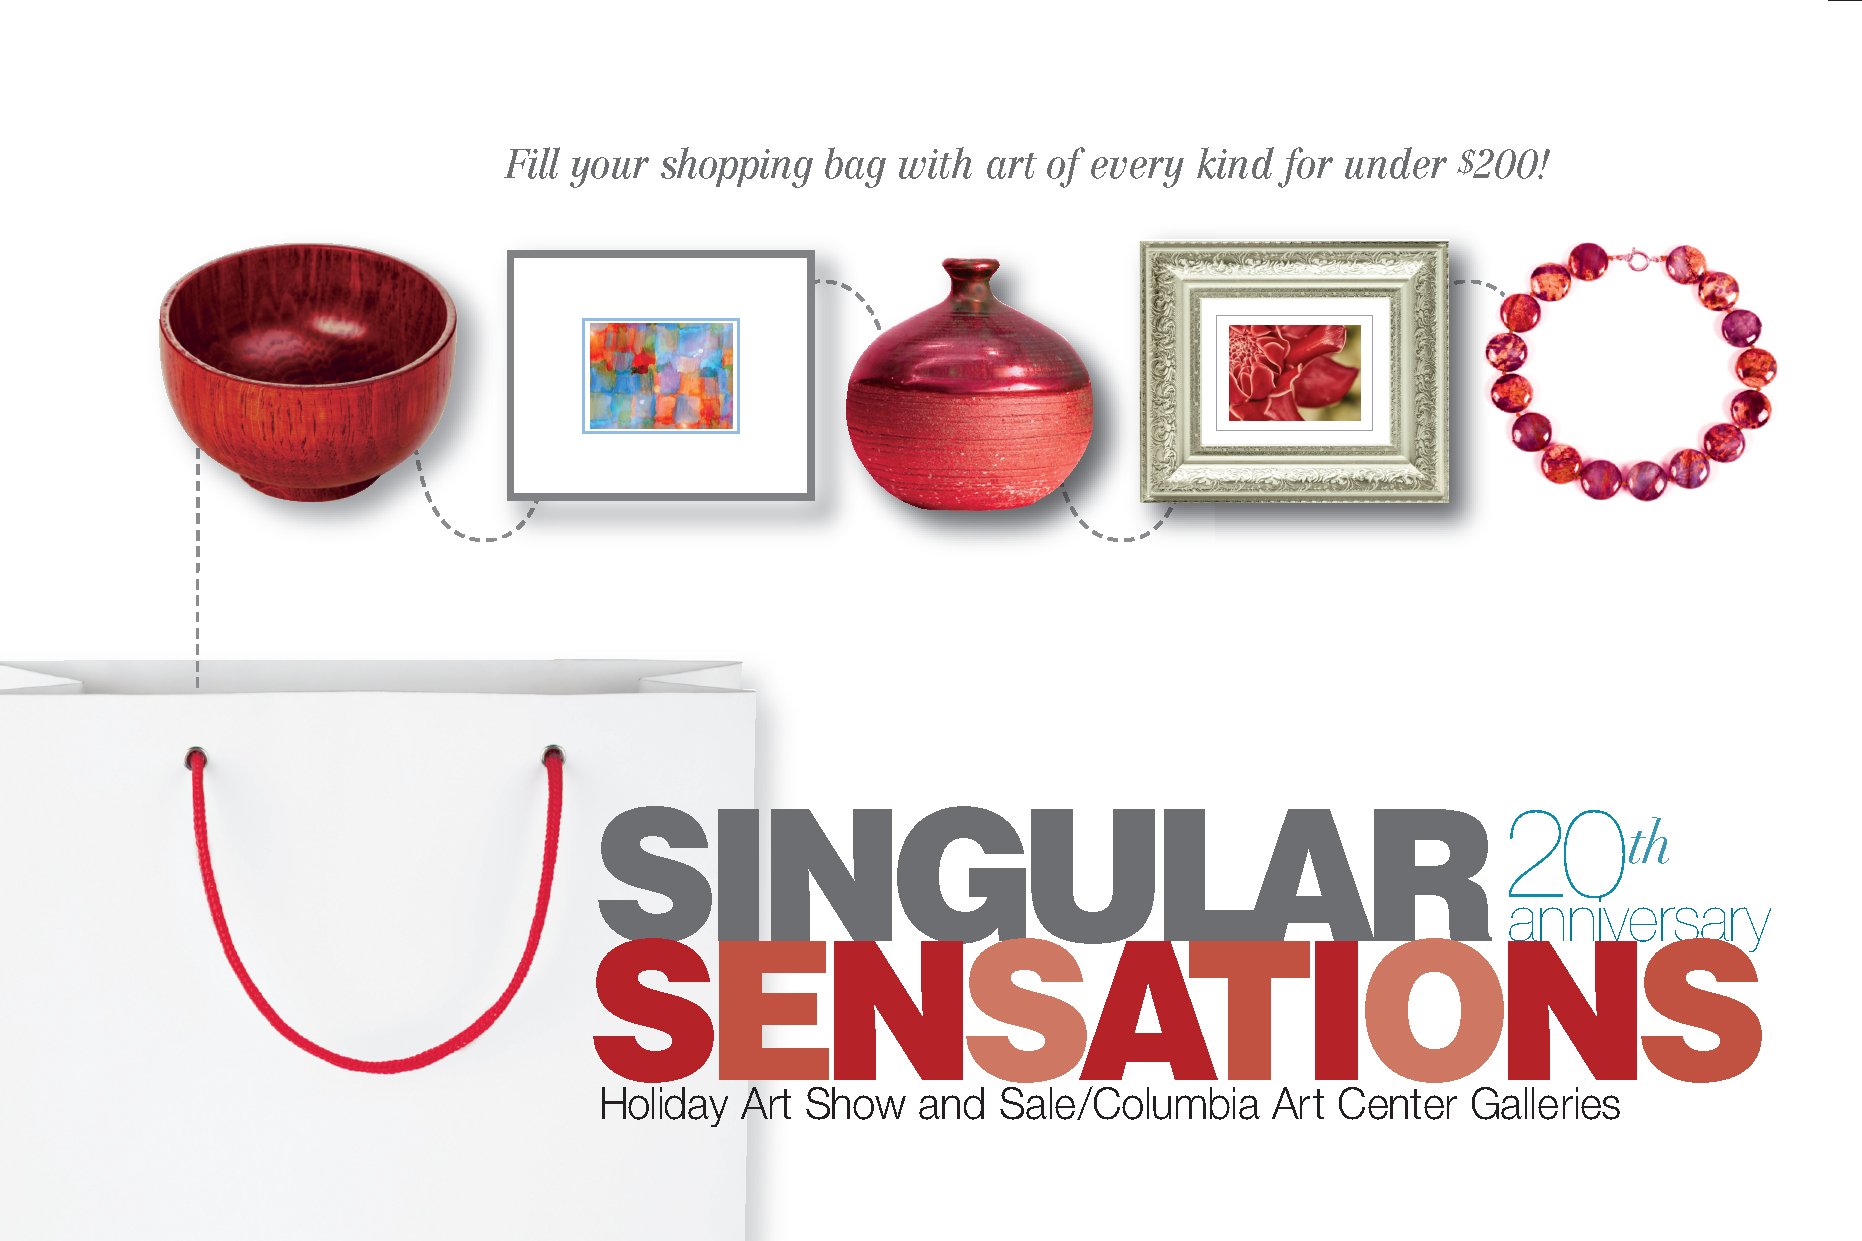 Singular Sensation Call to Action Banner